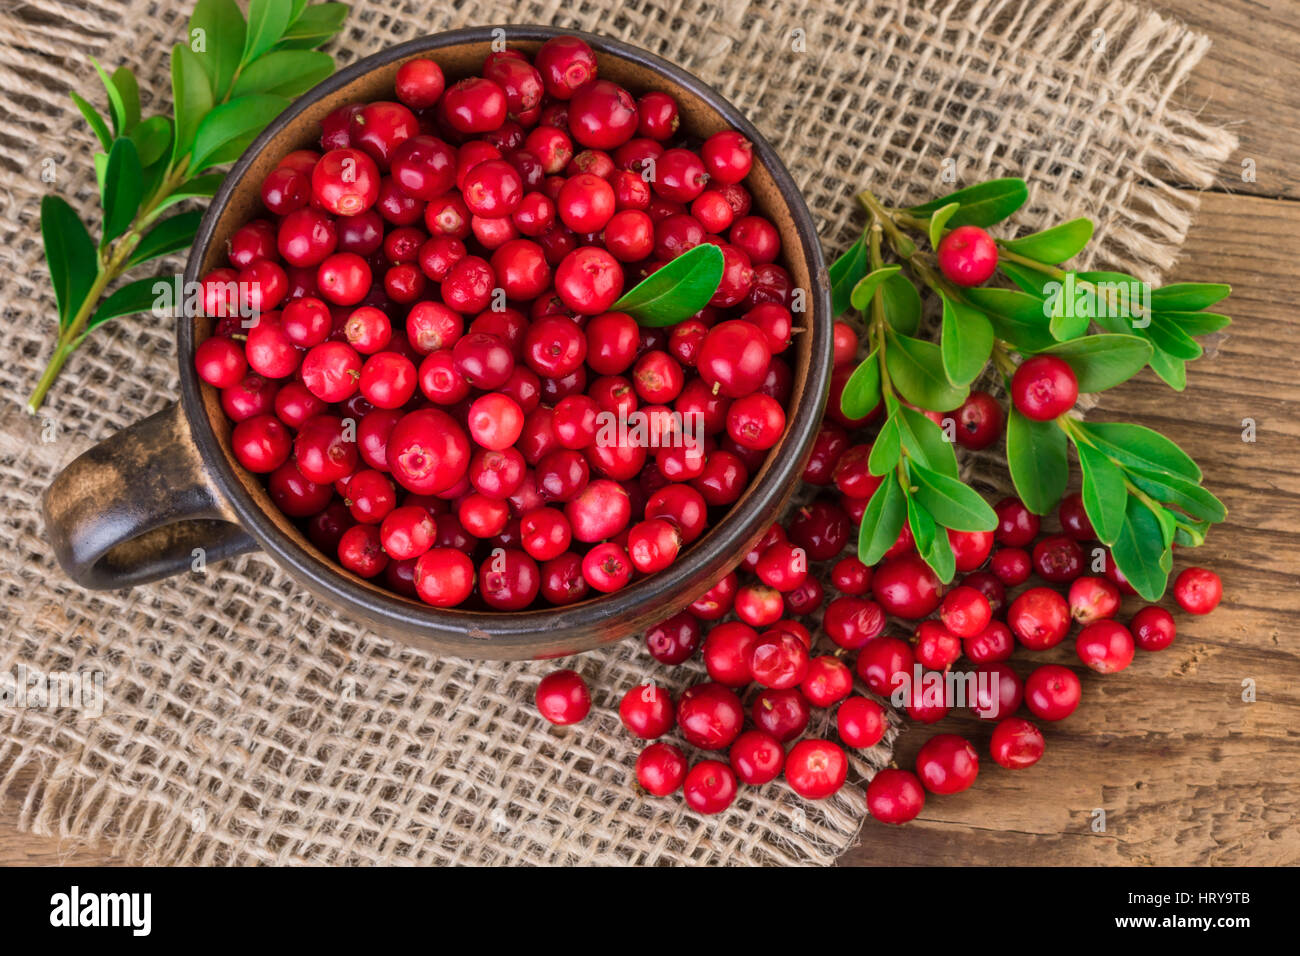 Cranberries over burlap background. Top view - Stock Image